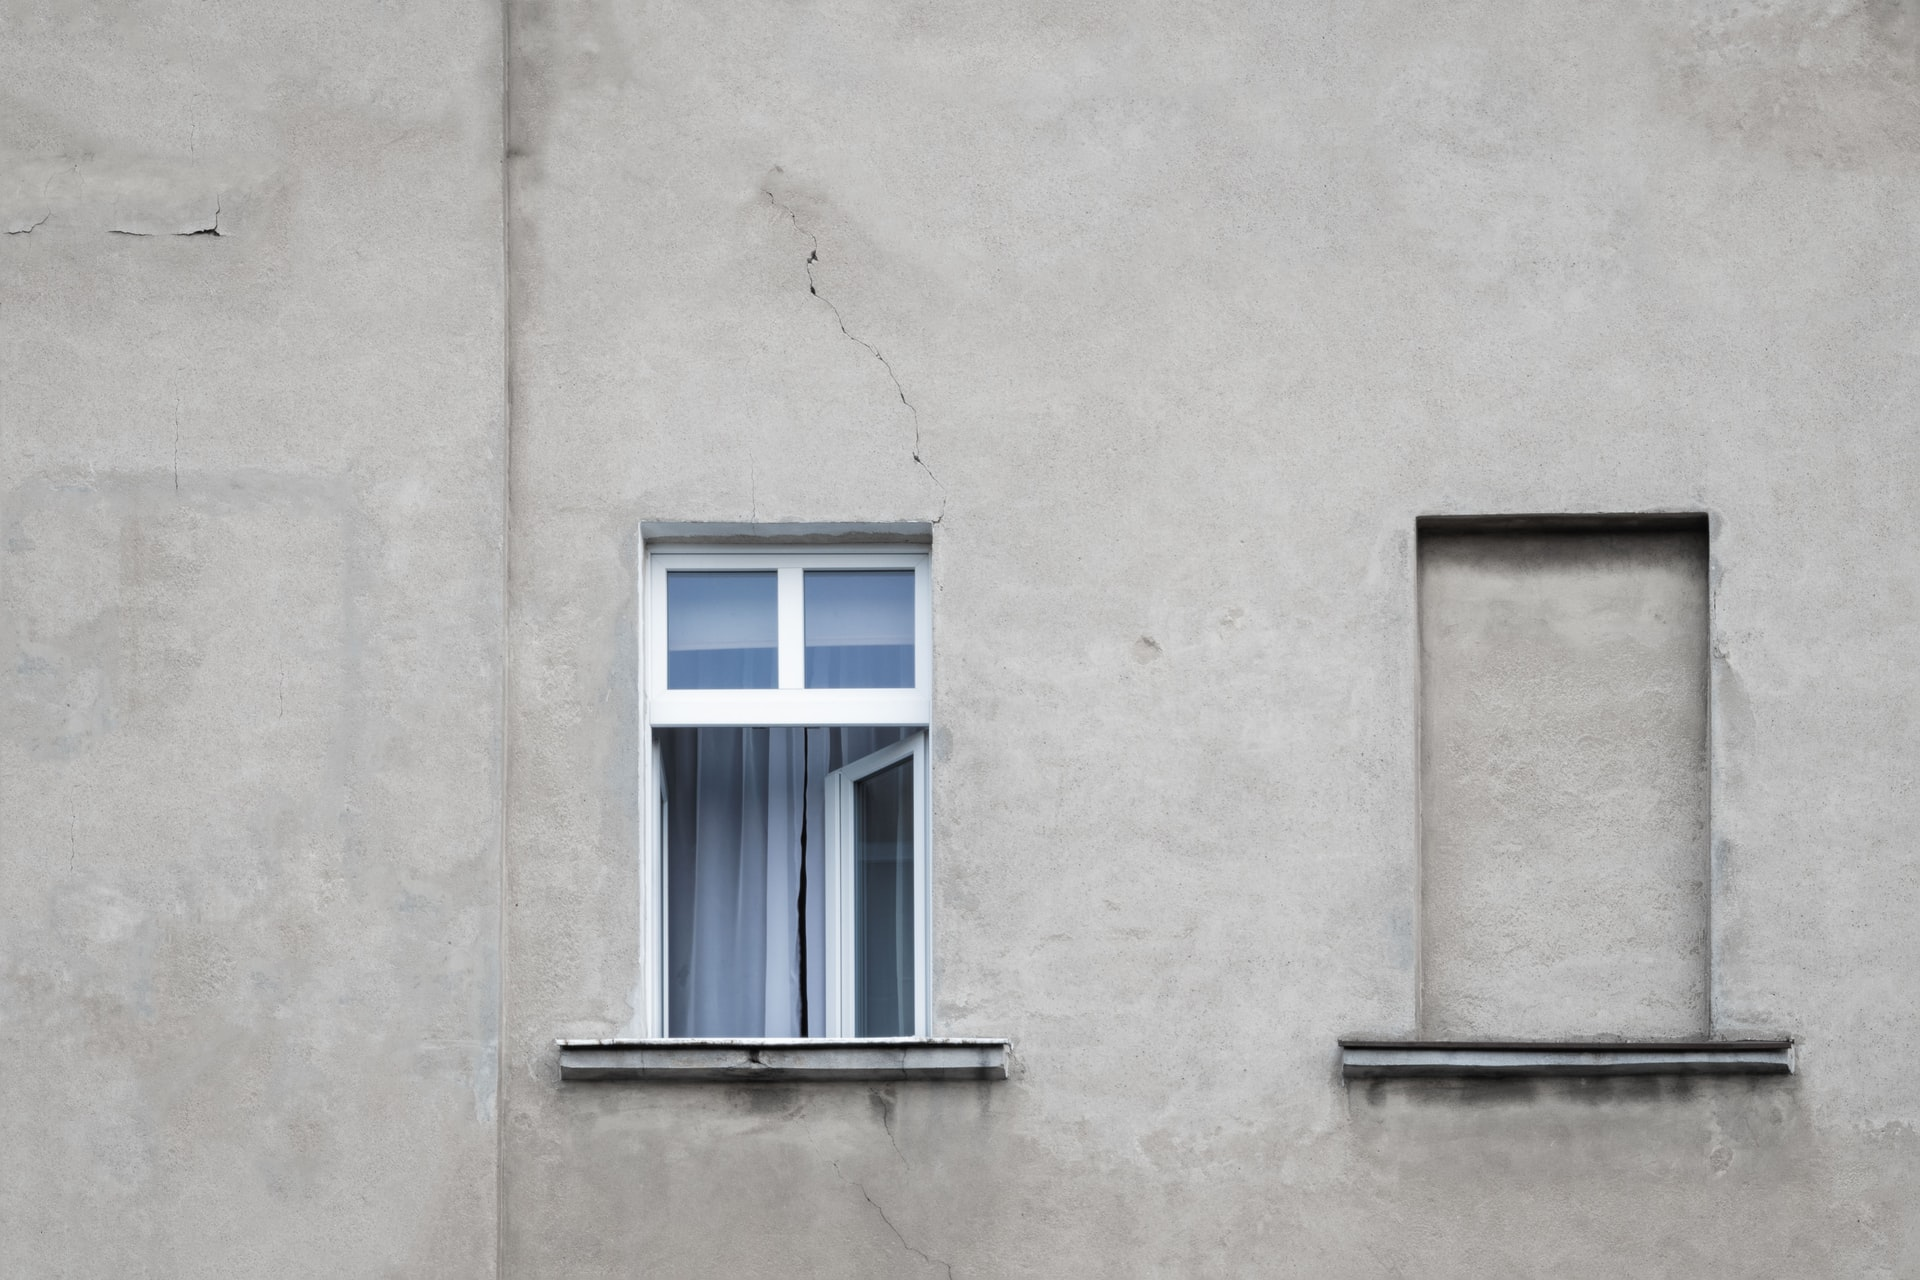 Exterior wall with cracks around the window